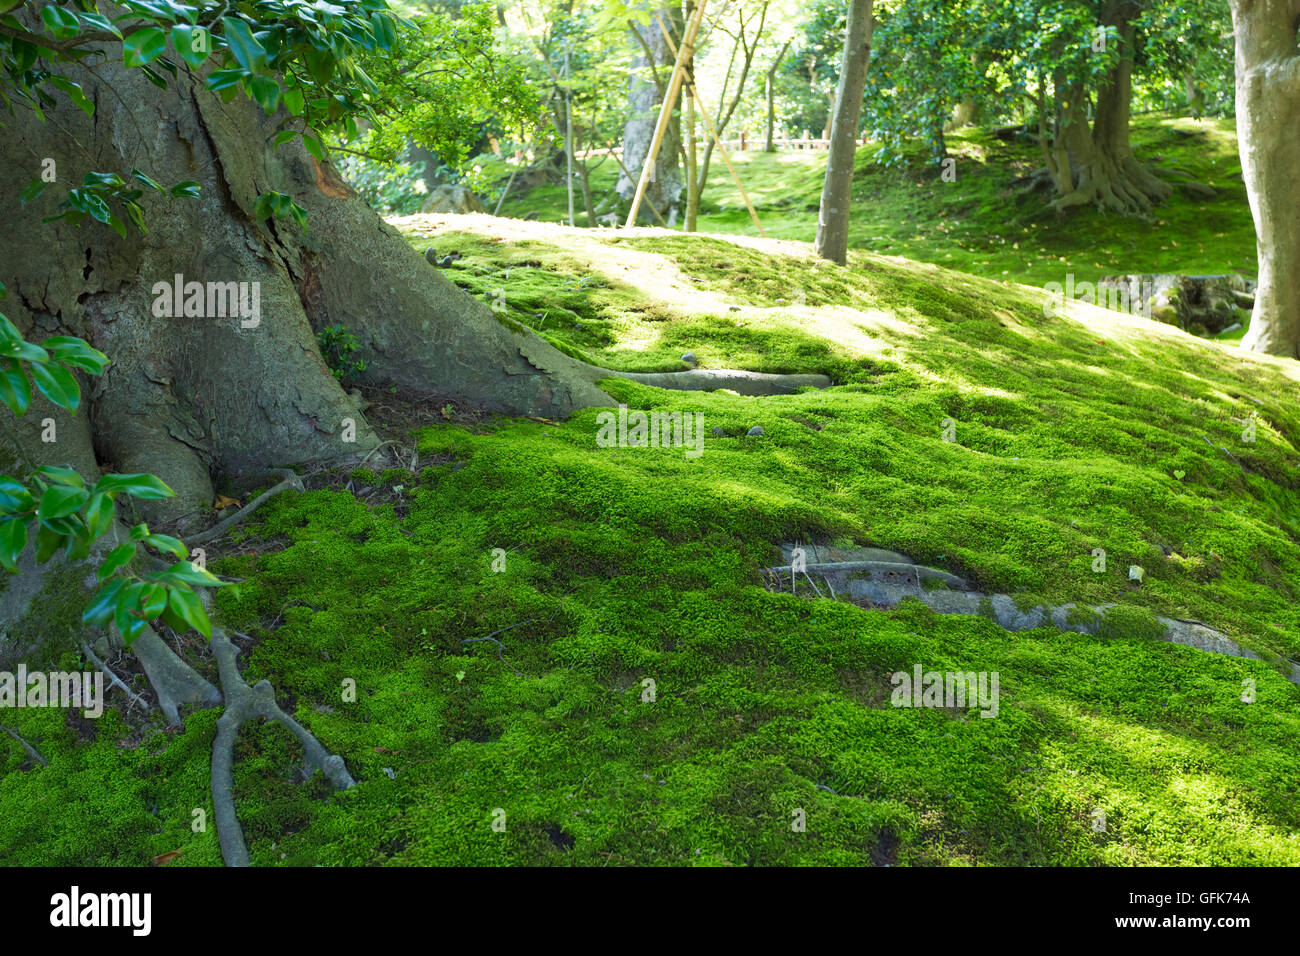 Clumps of moss on the ground - Stock Image